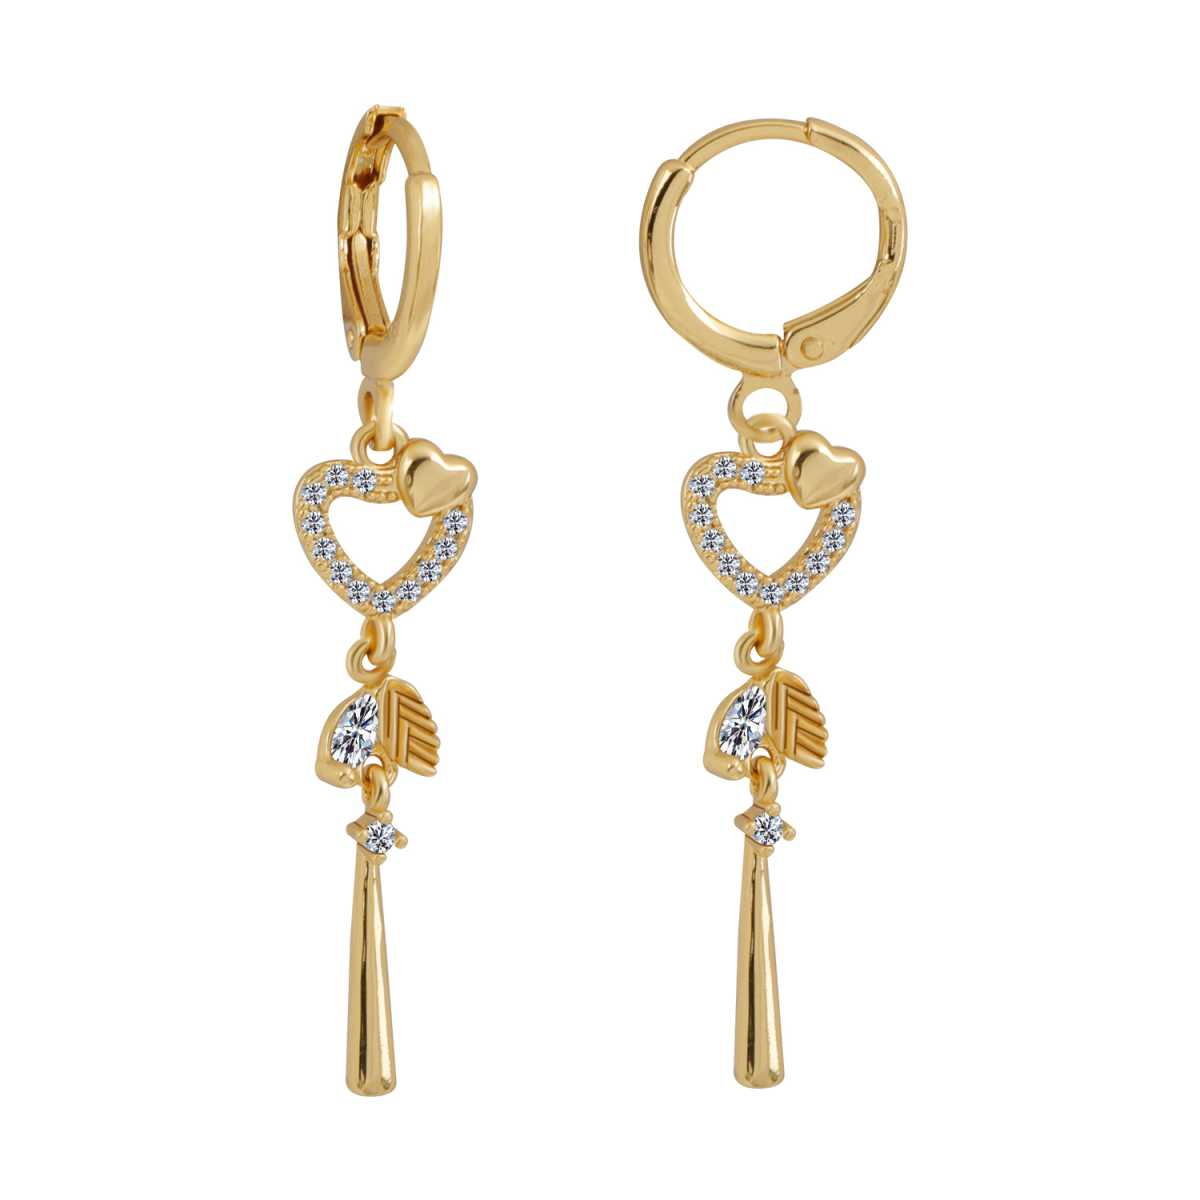 Silver Shine Glorious Golden Heart Clip On Bali Earring for Women